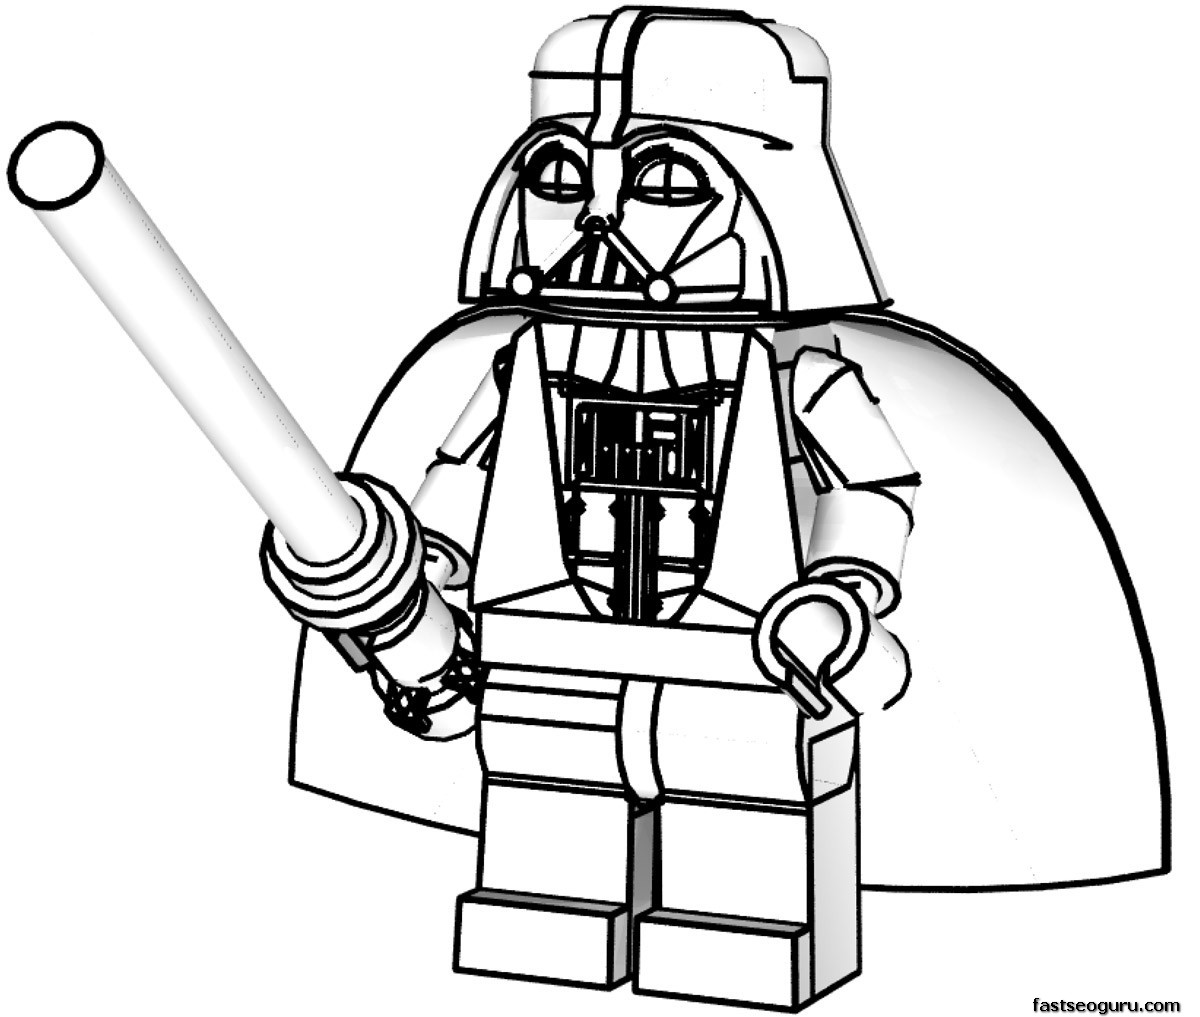 star wars coloring printables coloring pages star wars free printable coloring pages wars star printables coloring 1 1